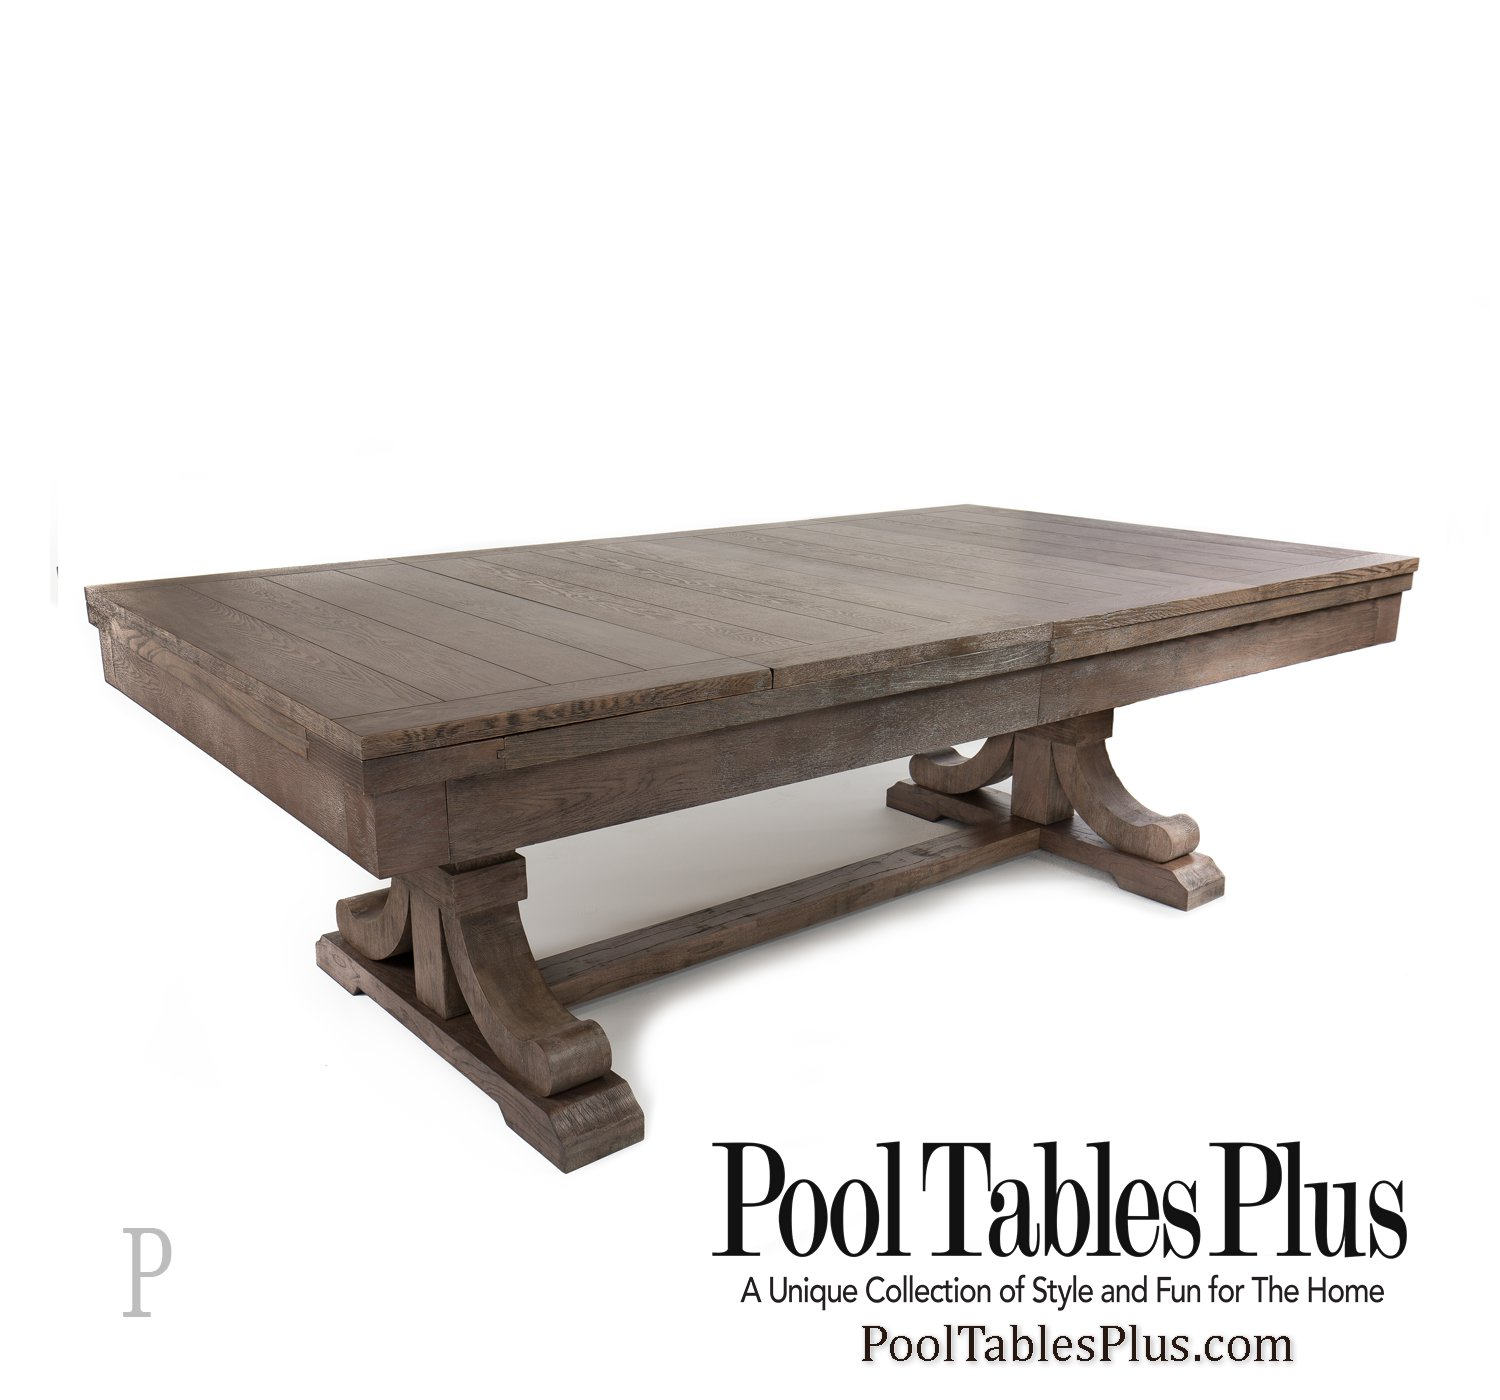 Delicieux Pool Tables Plus